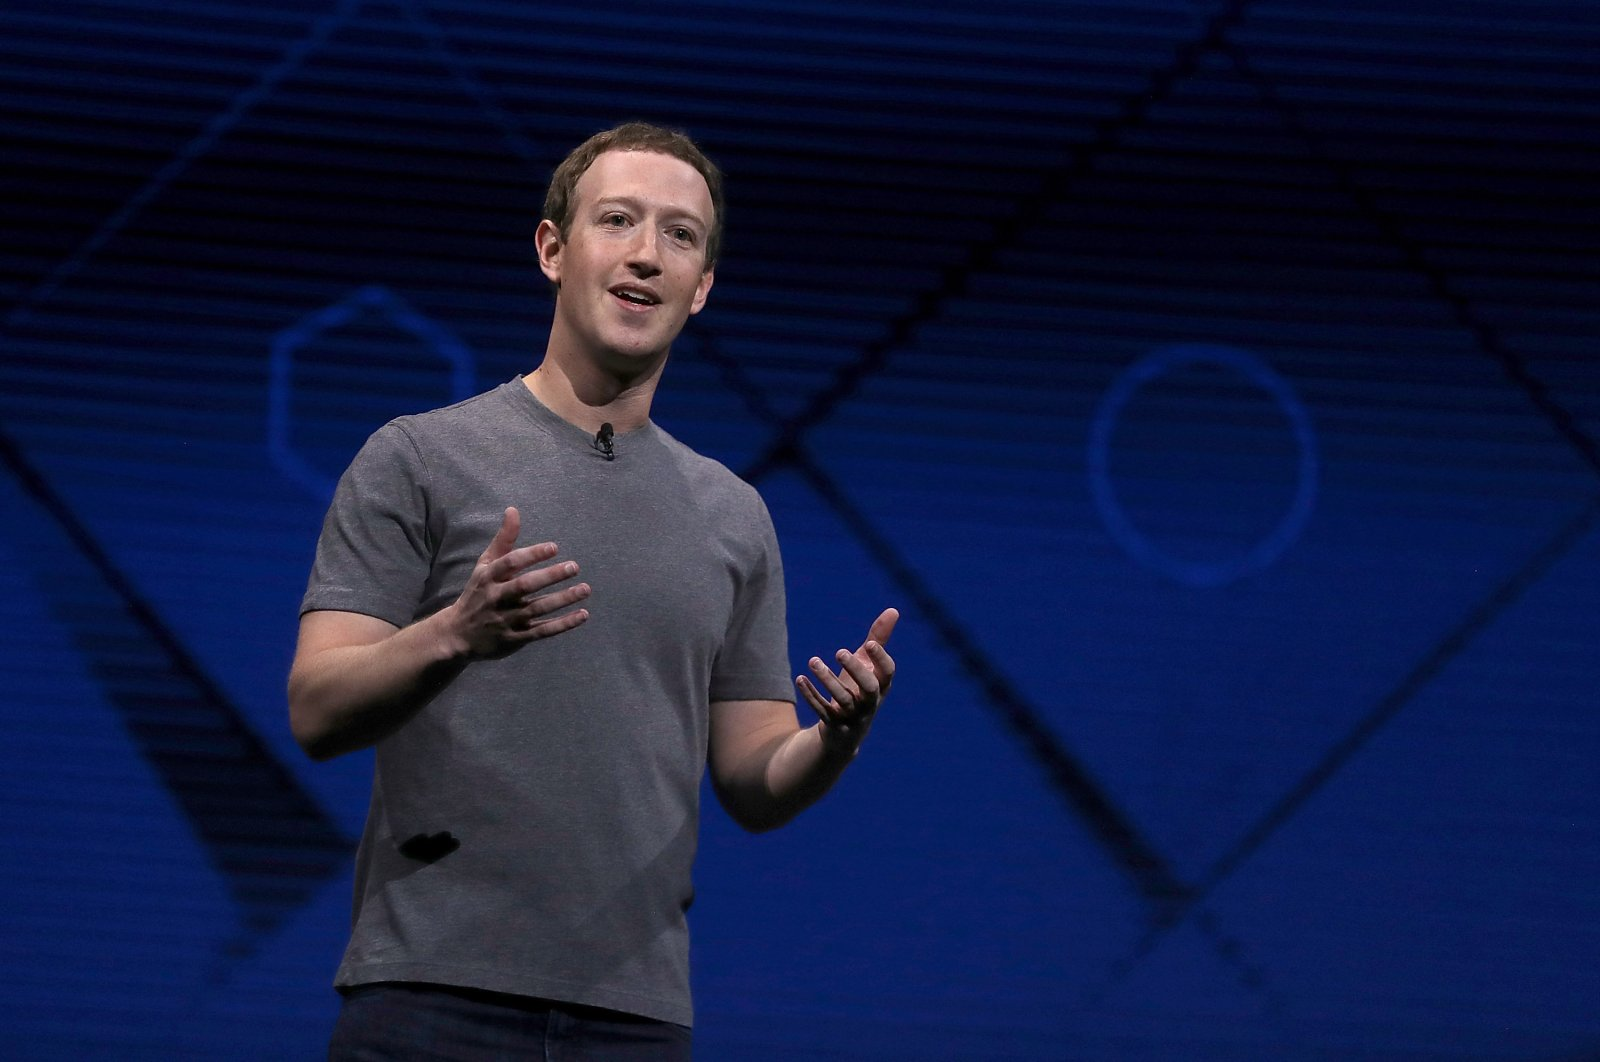 Facebook CEO Mark Zuckerberg delivers the keynote address at Facebook's F8 Developer Conference at McEnery Convention Center in San Jose, California, April 18, 2017. (Photo by Justin Sullivan/Getty Images)